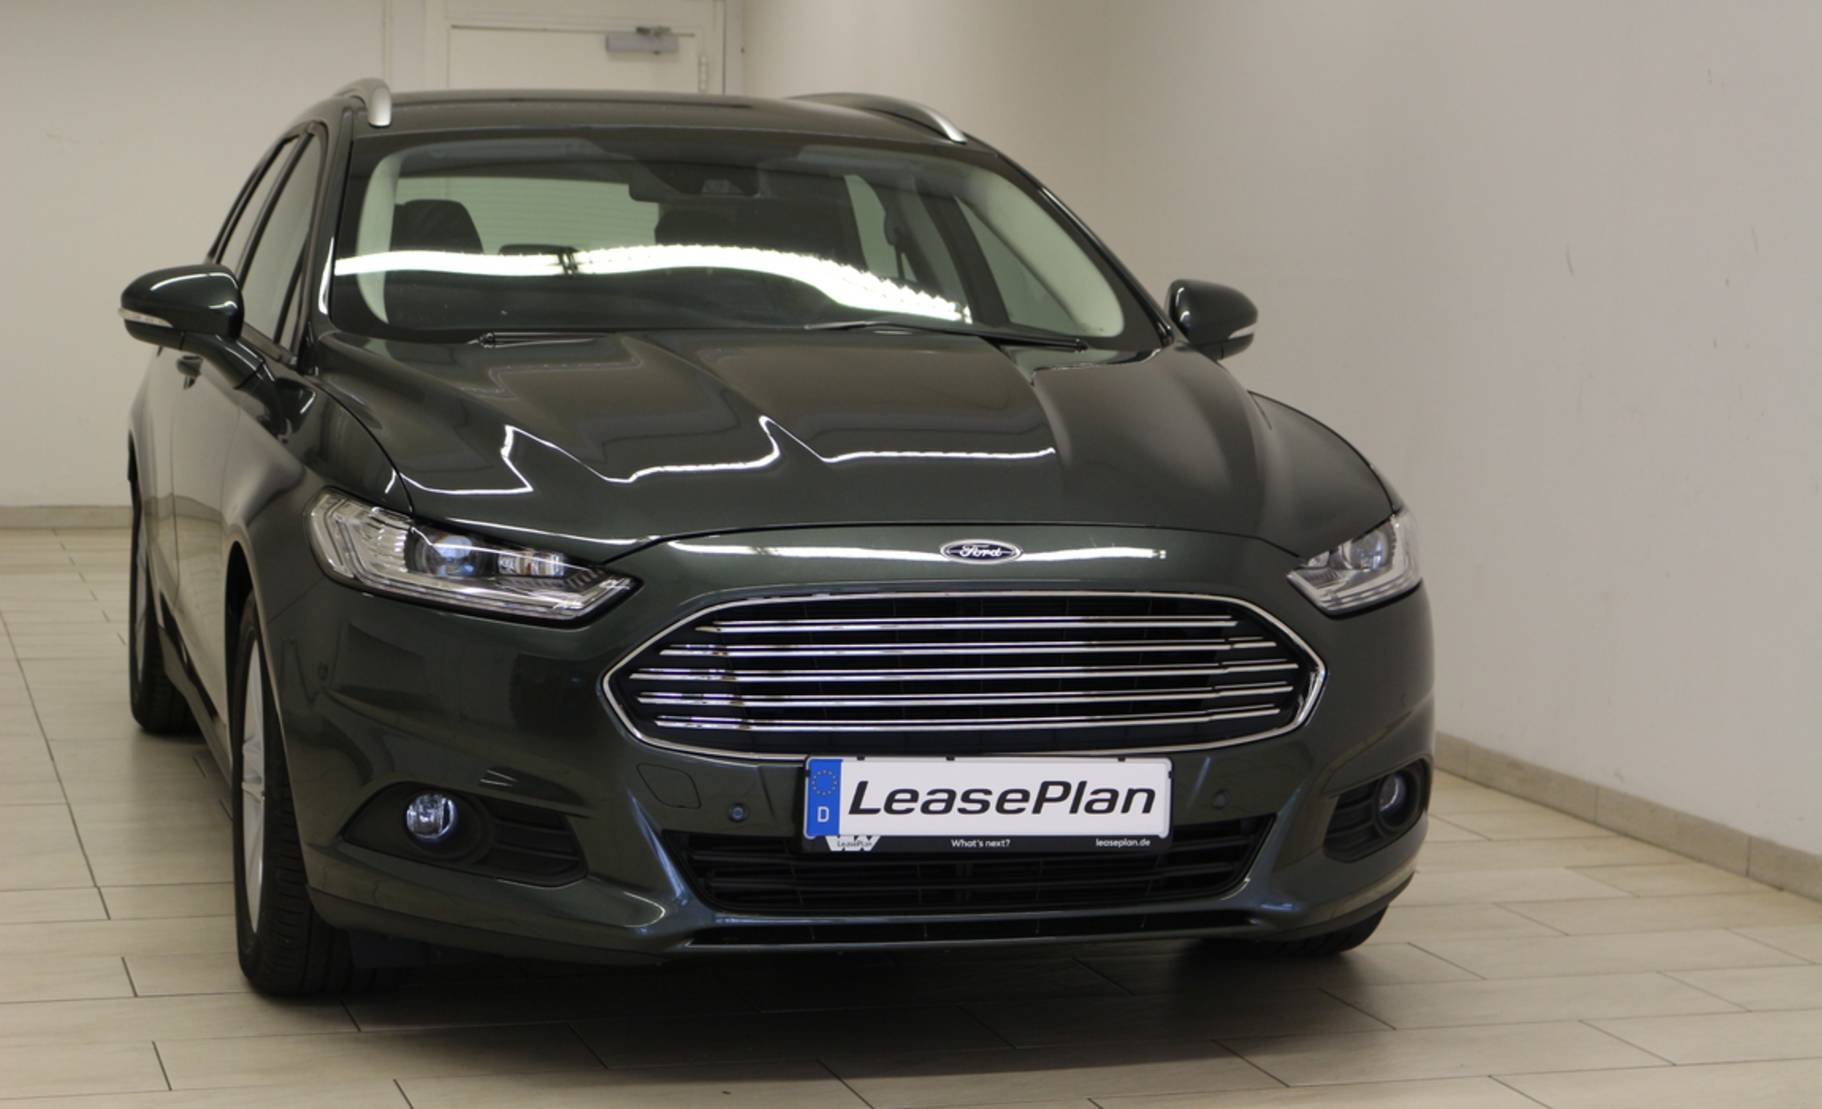 Ford Mondeo Turnier 2.0 TDCi Business Edition LED/NAVI detail1